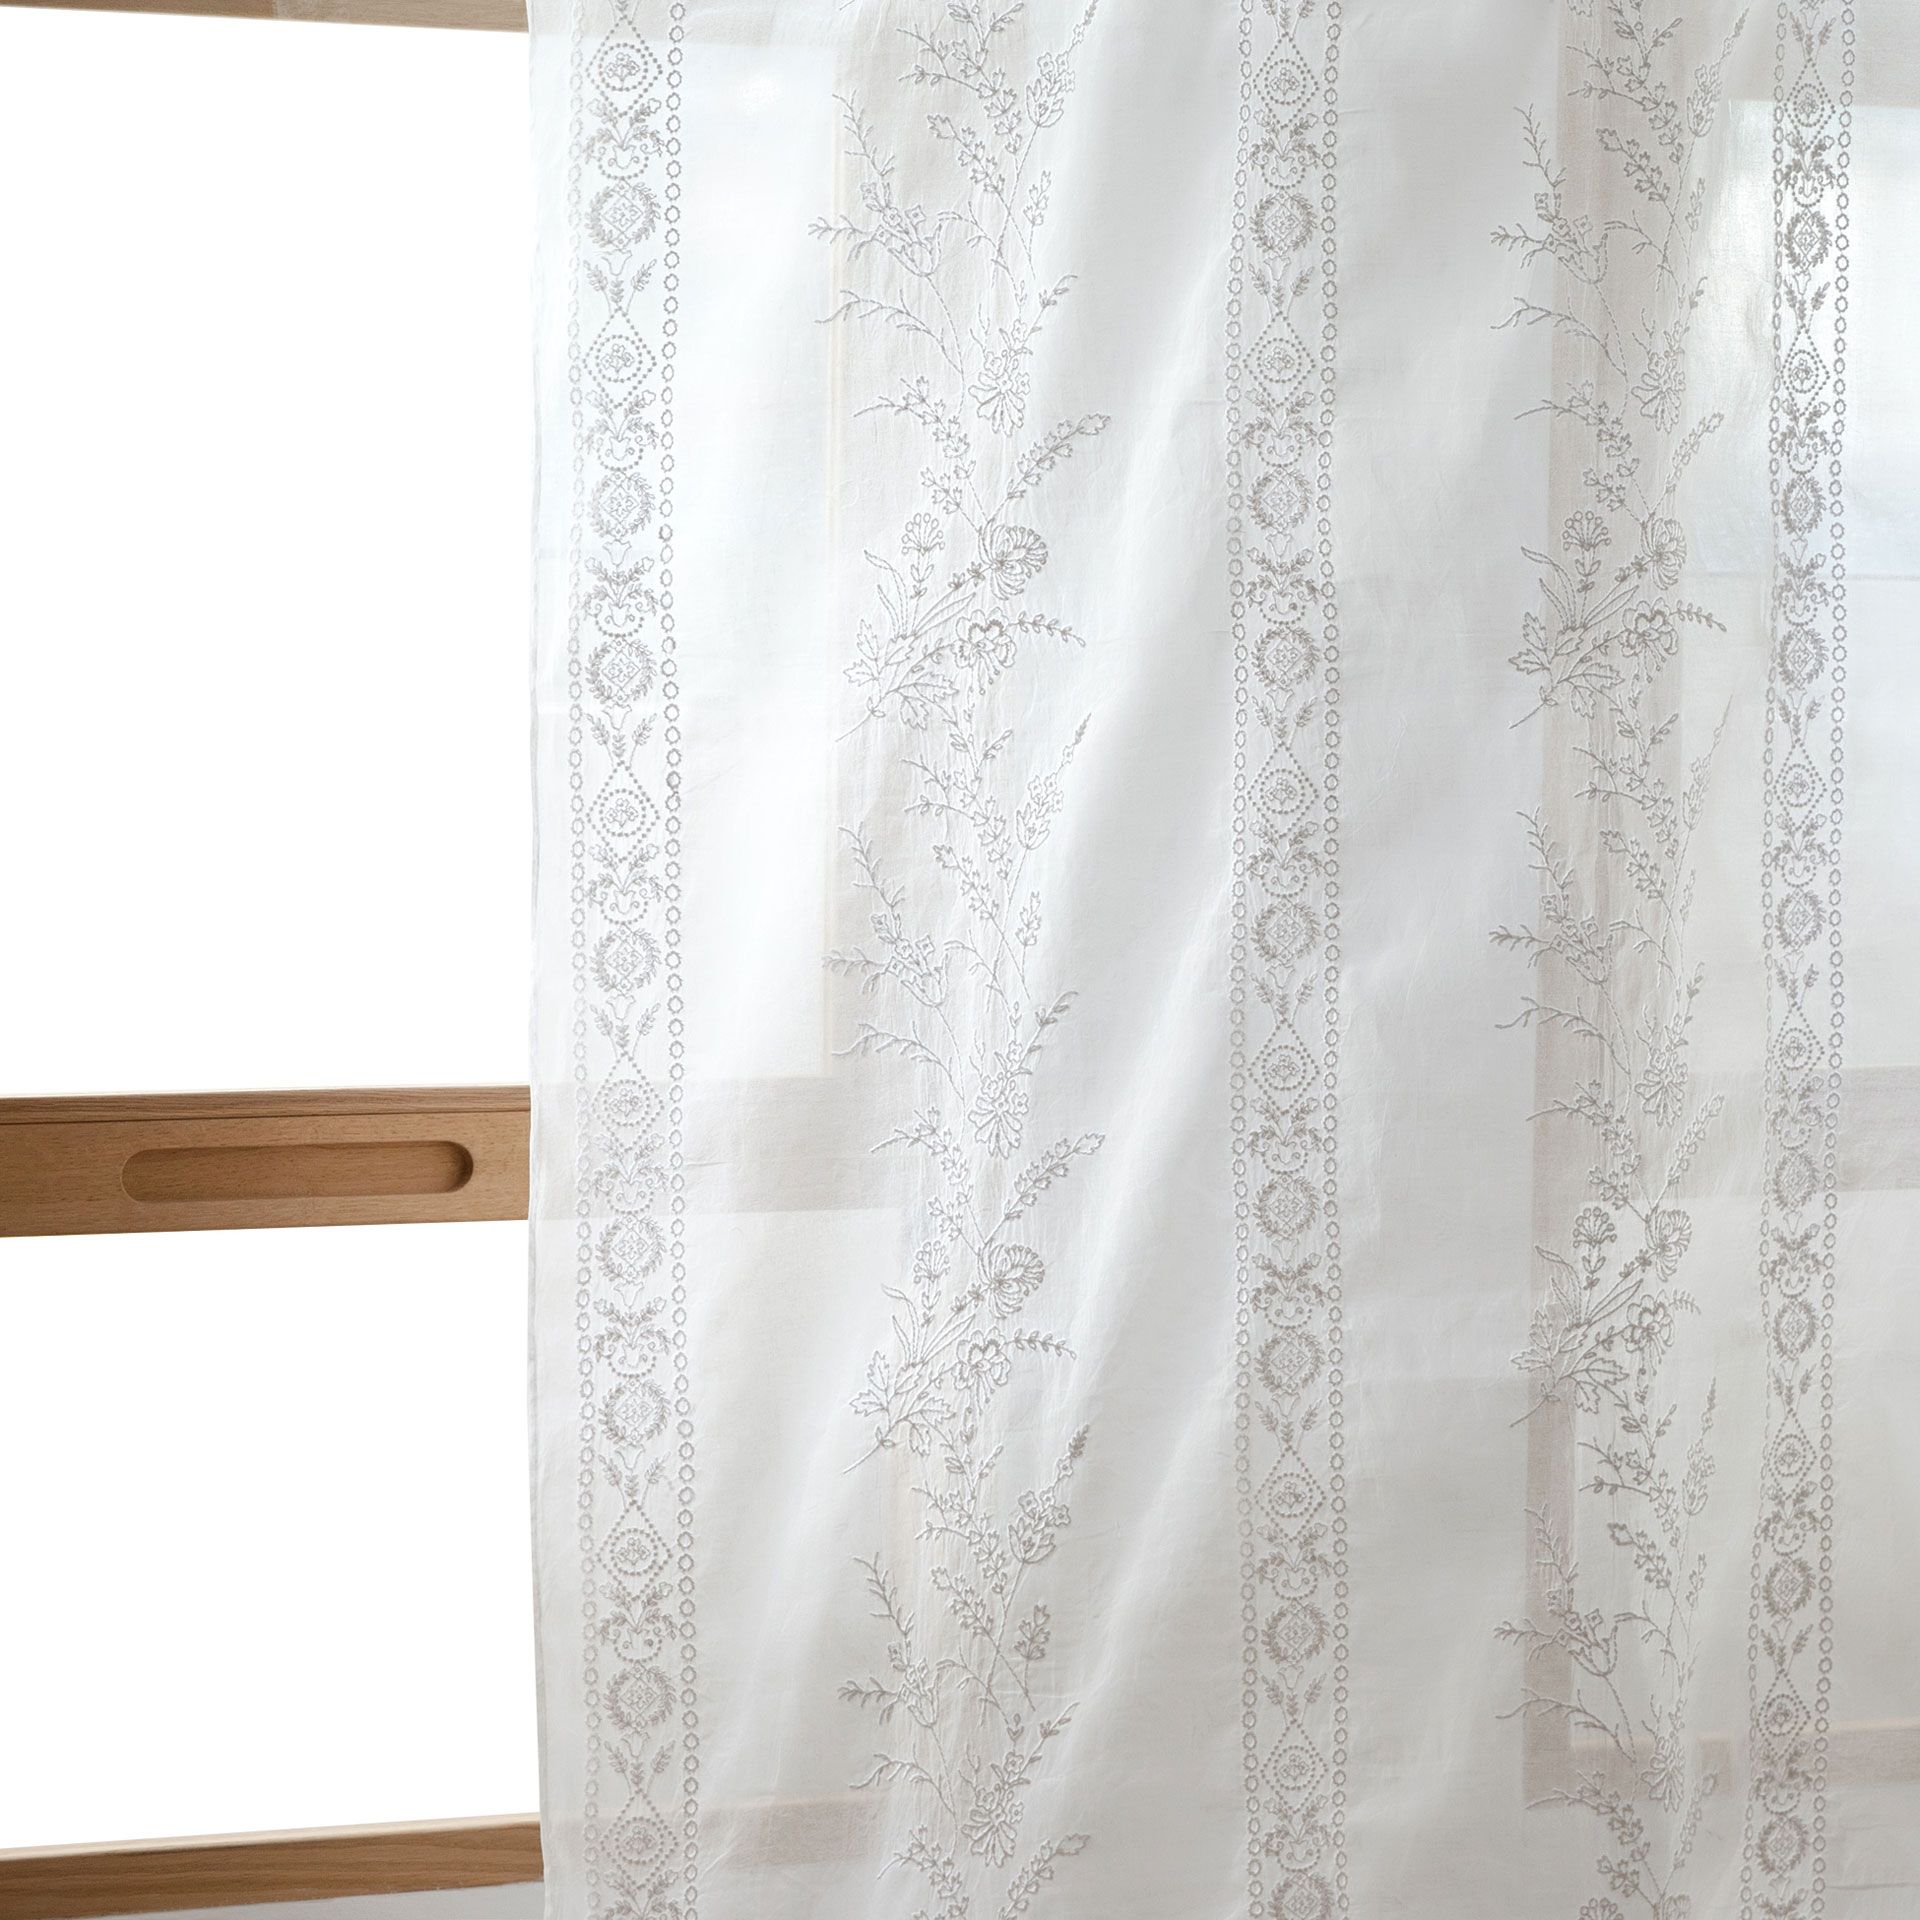 Cortina organza bordado cortinas decoraci n zara for Cortinas dormitorio zara home